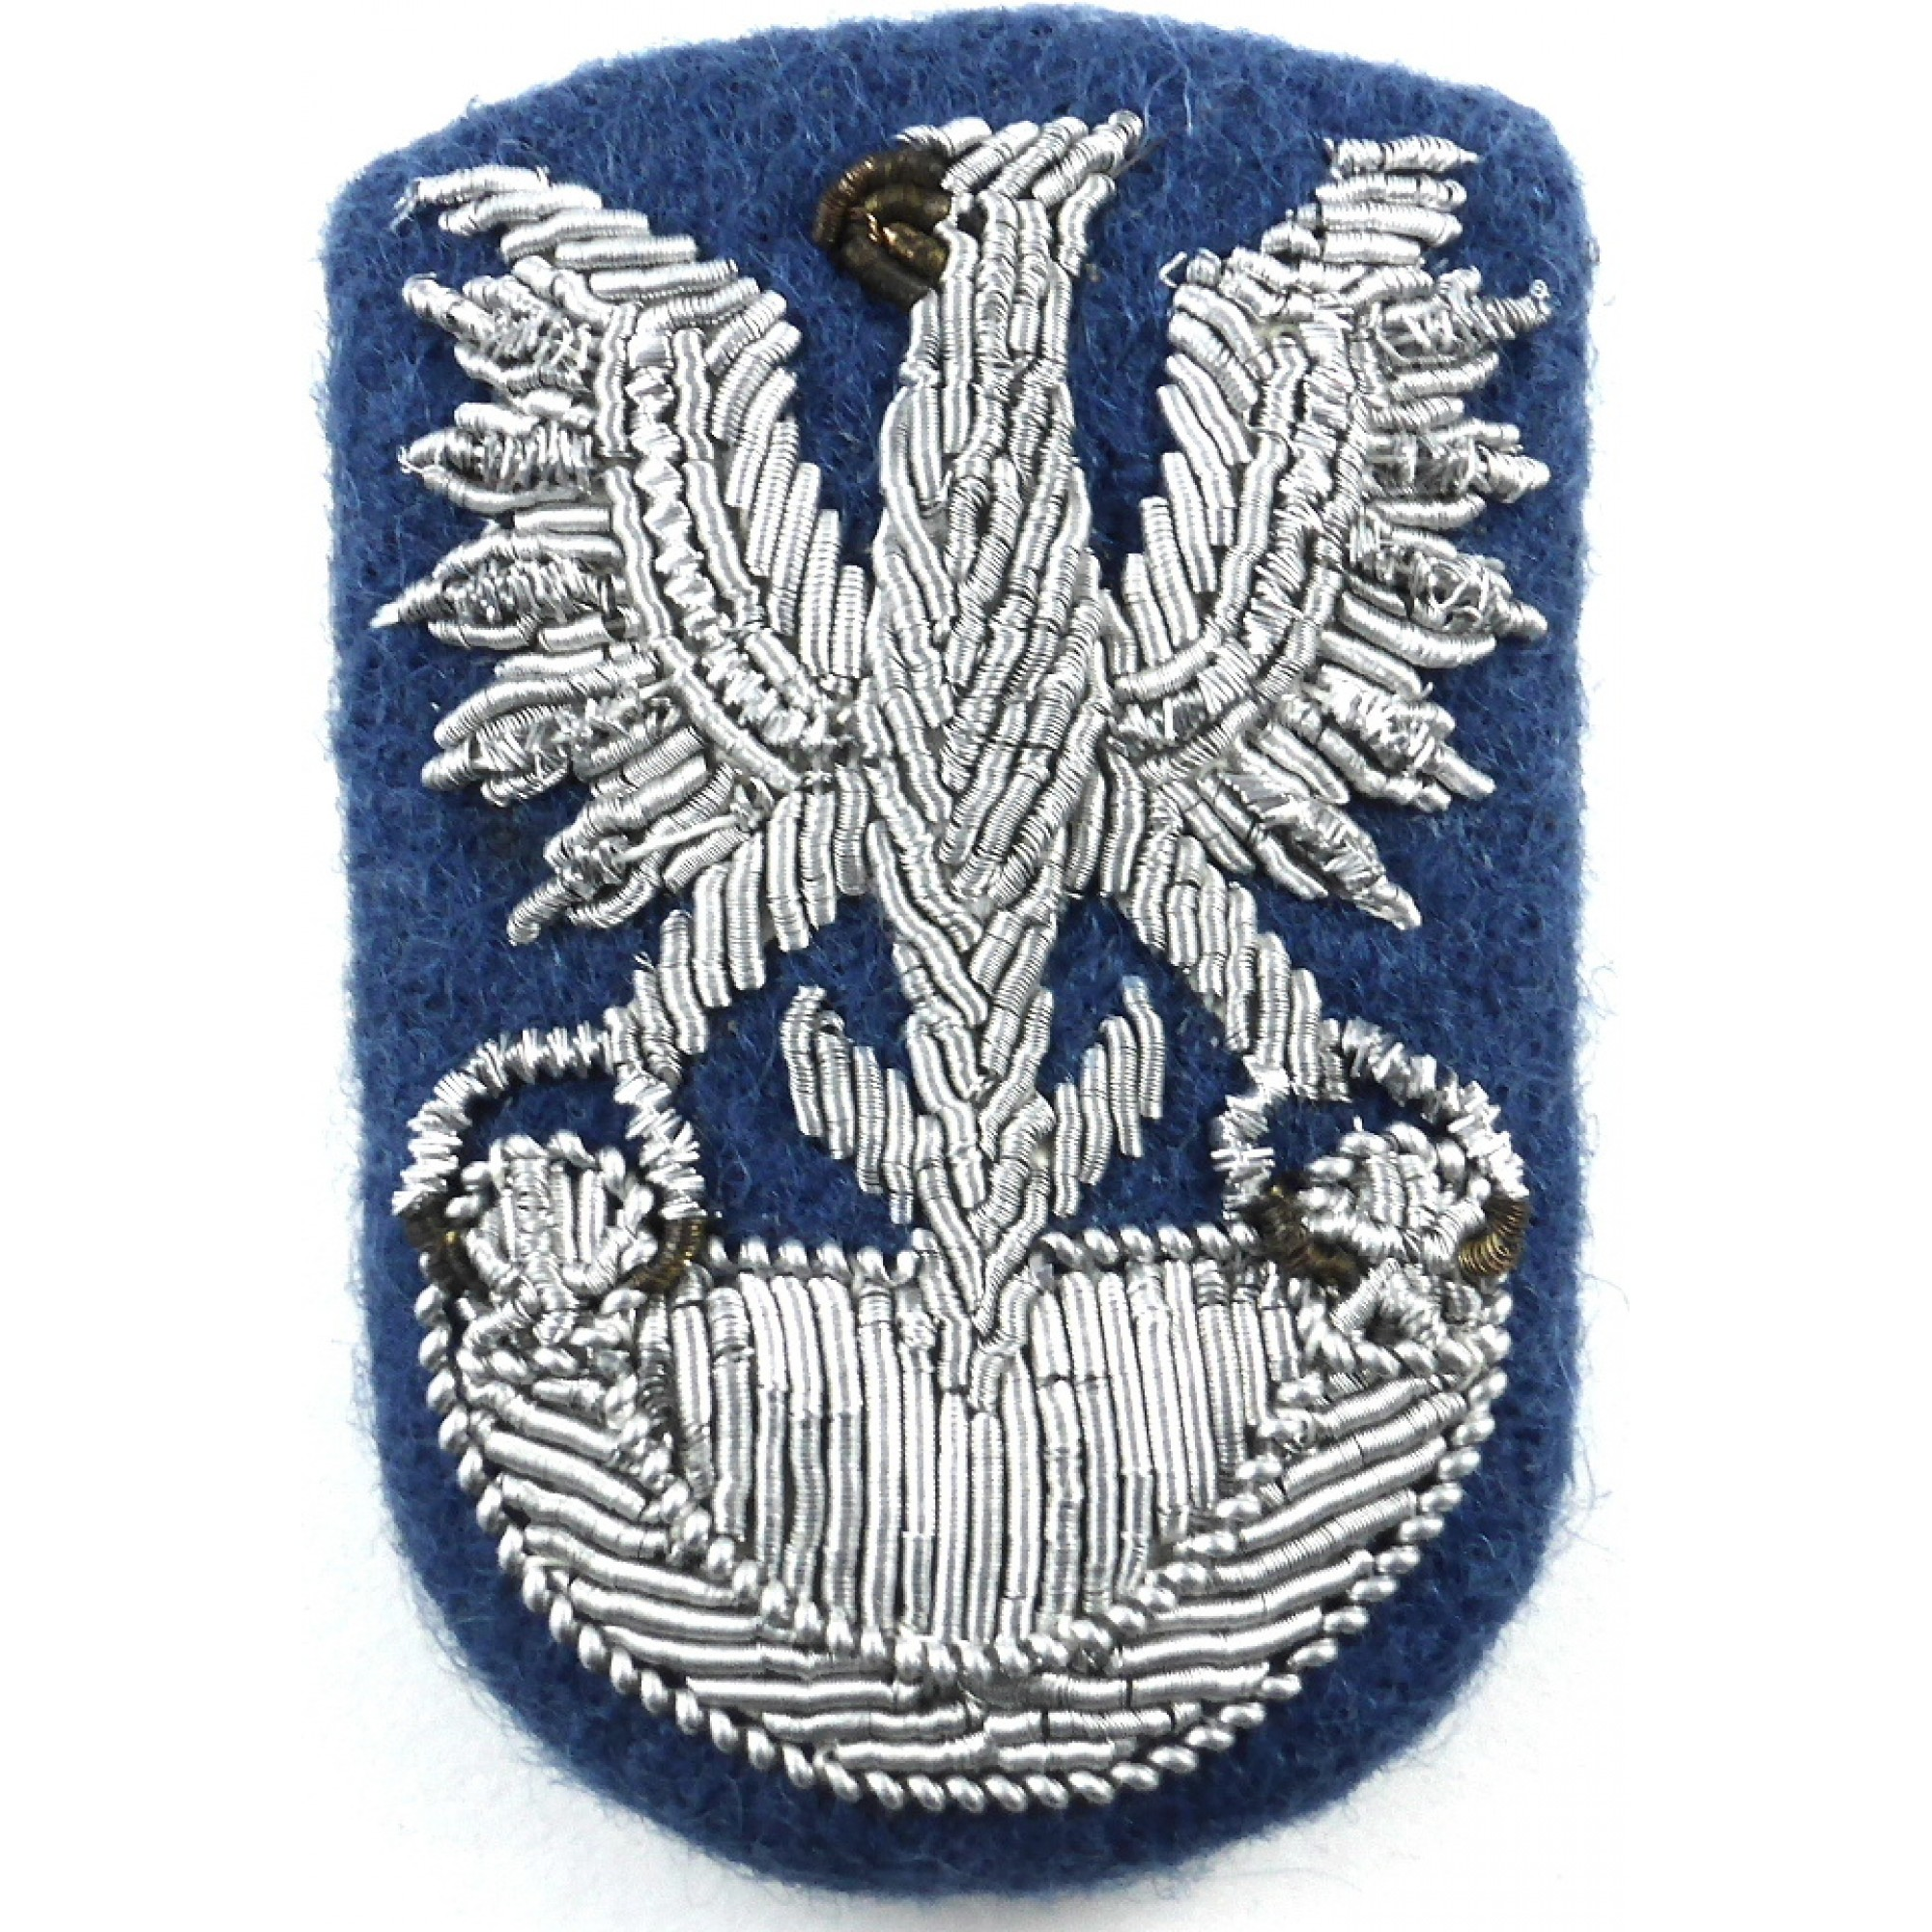 Poland Army Bullion Wire Cap/Beret Badge | Badges of the World